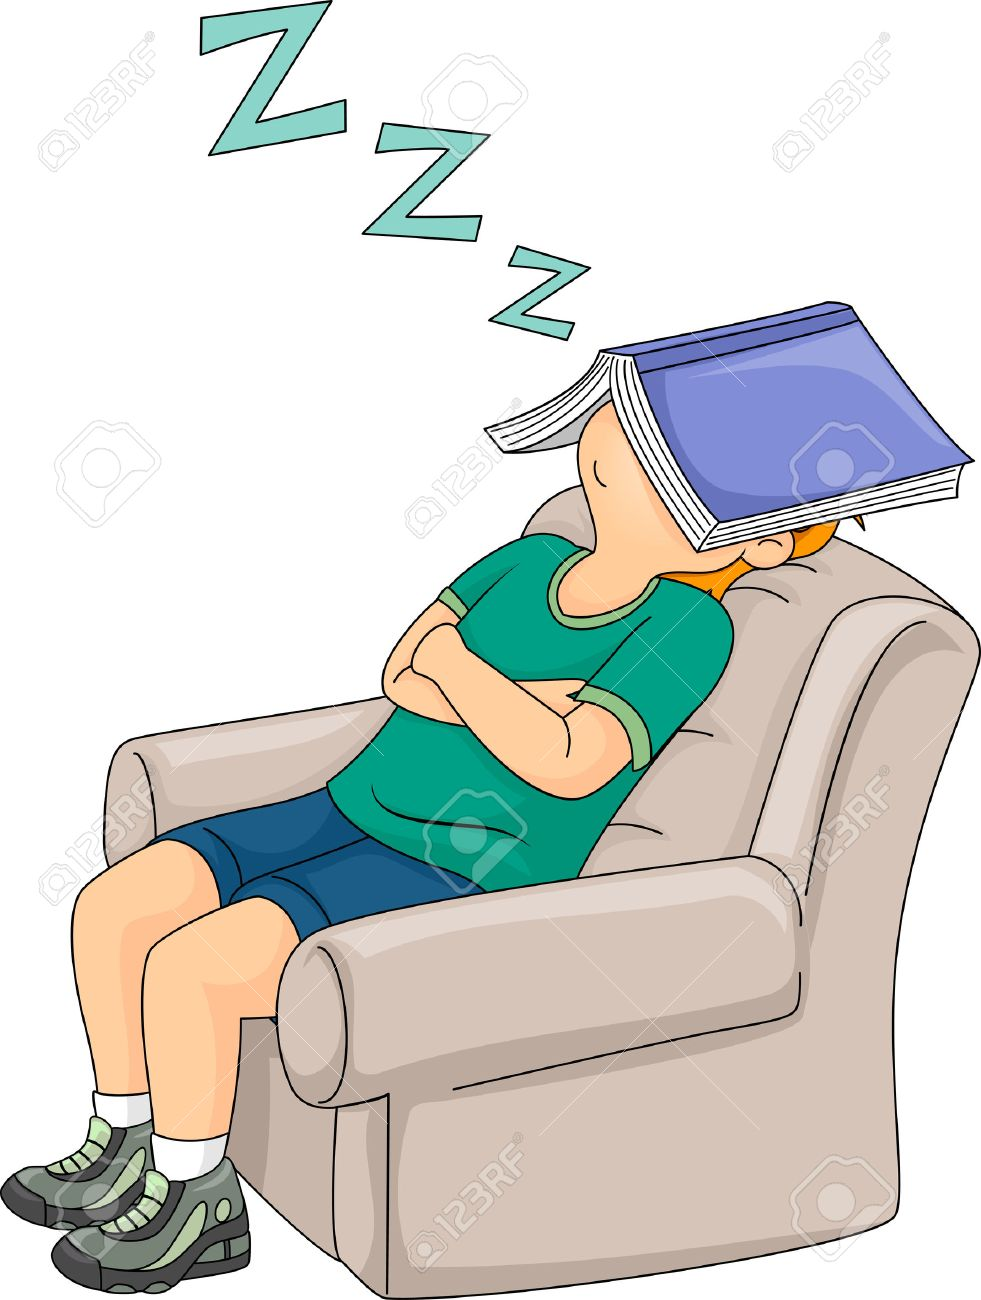 53,073 Sleeping Stock Illustrations, Cliparts And Royalty Free ...